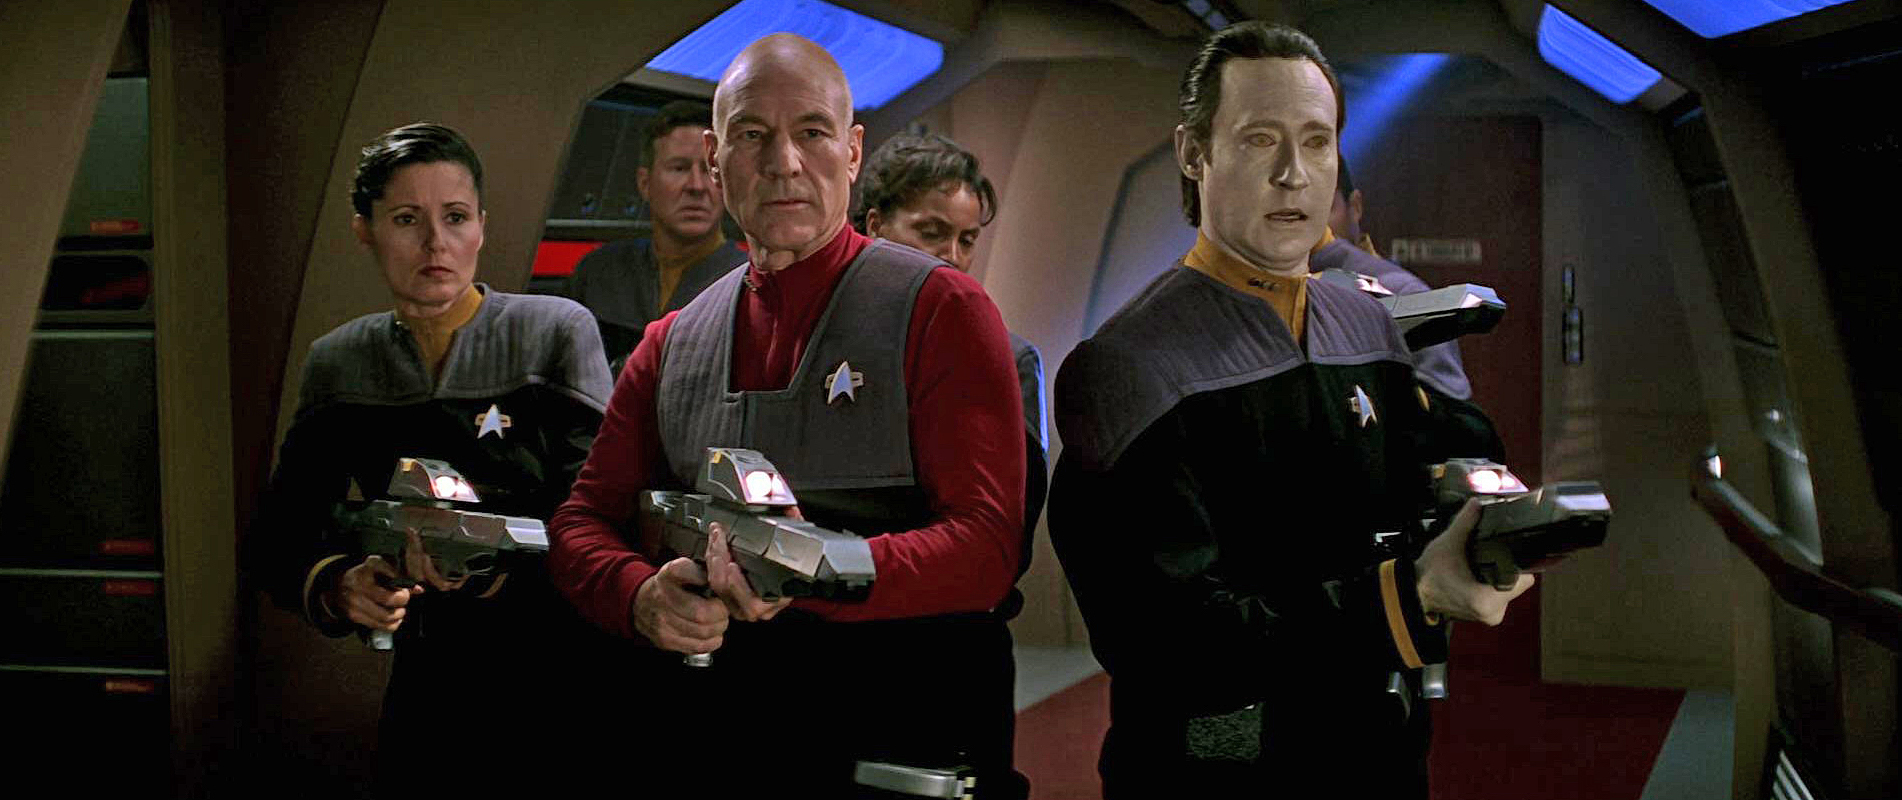 The crew of the Enterprise face off a Borg invasion in Star Trek: First Contact